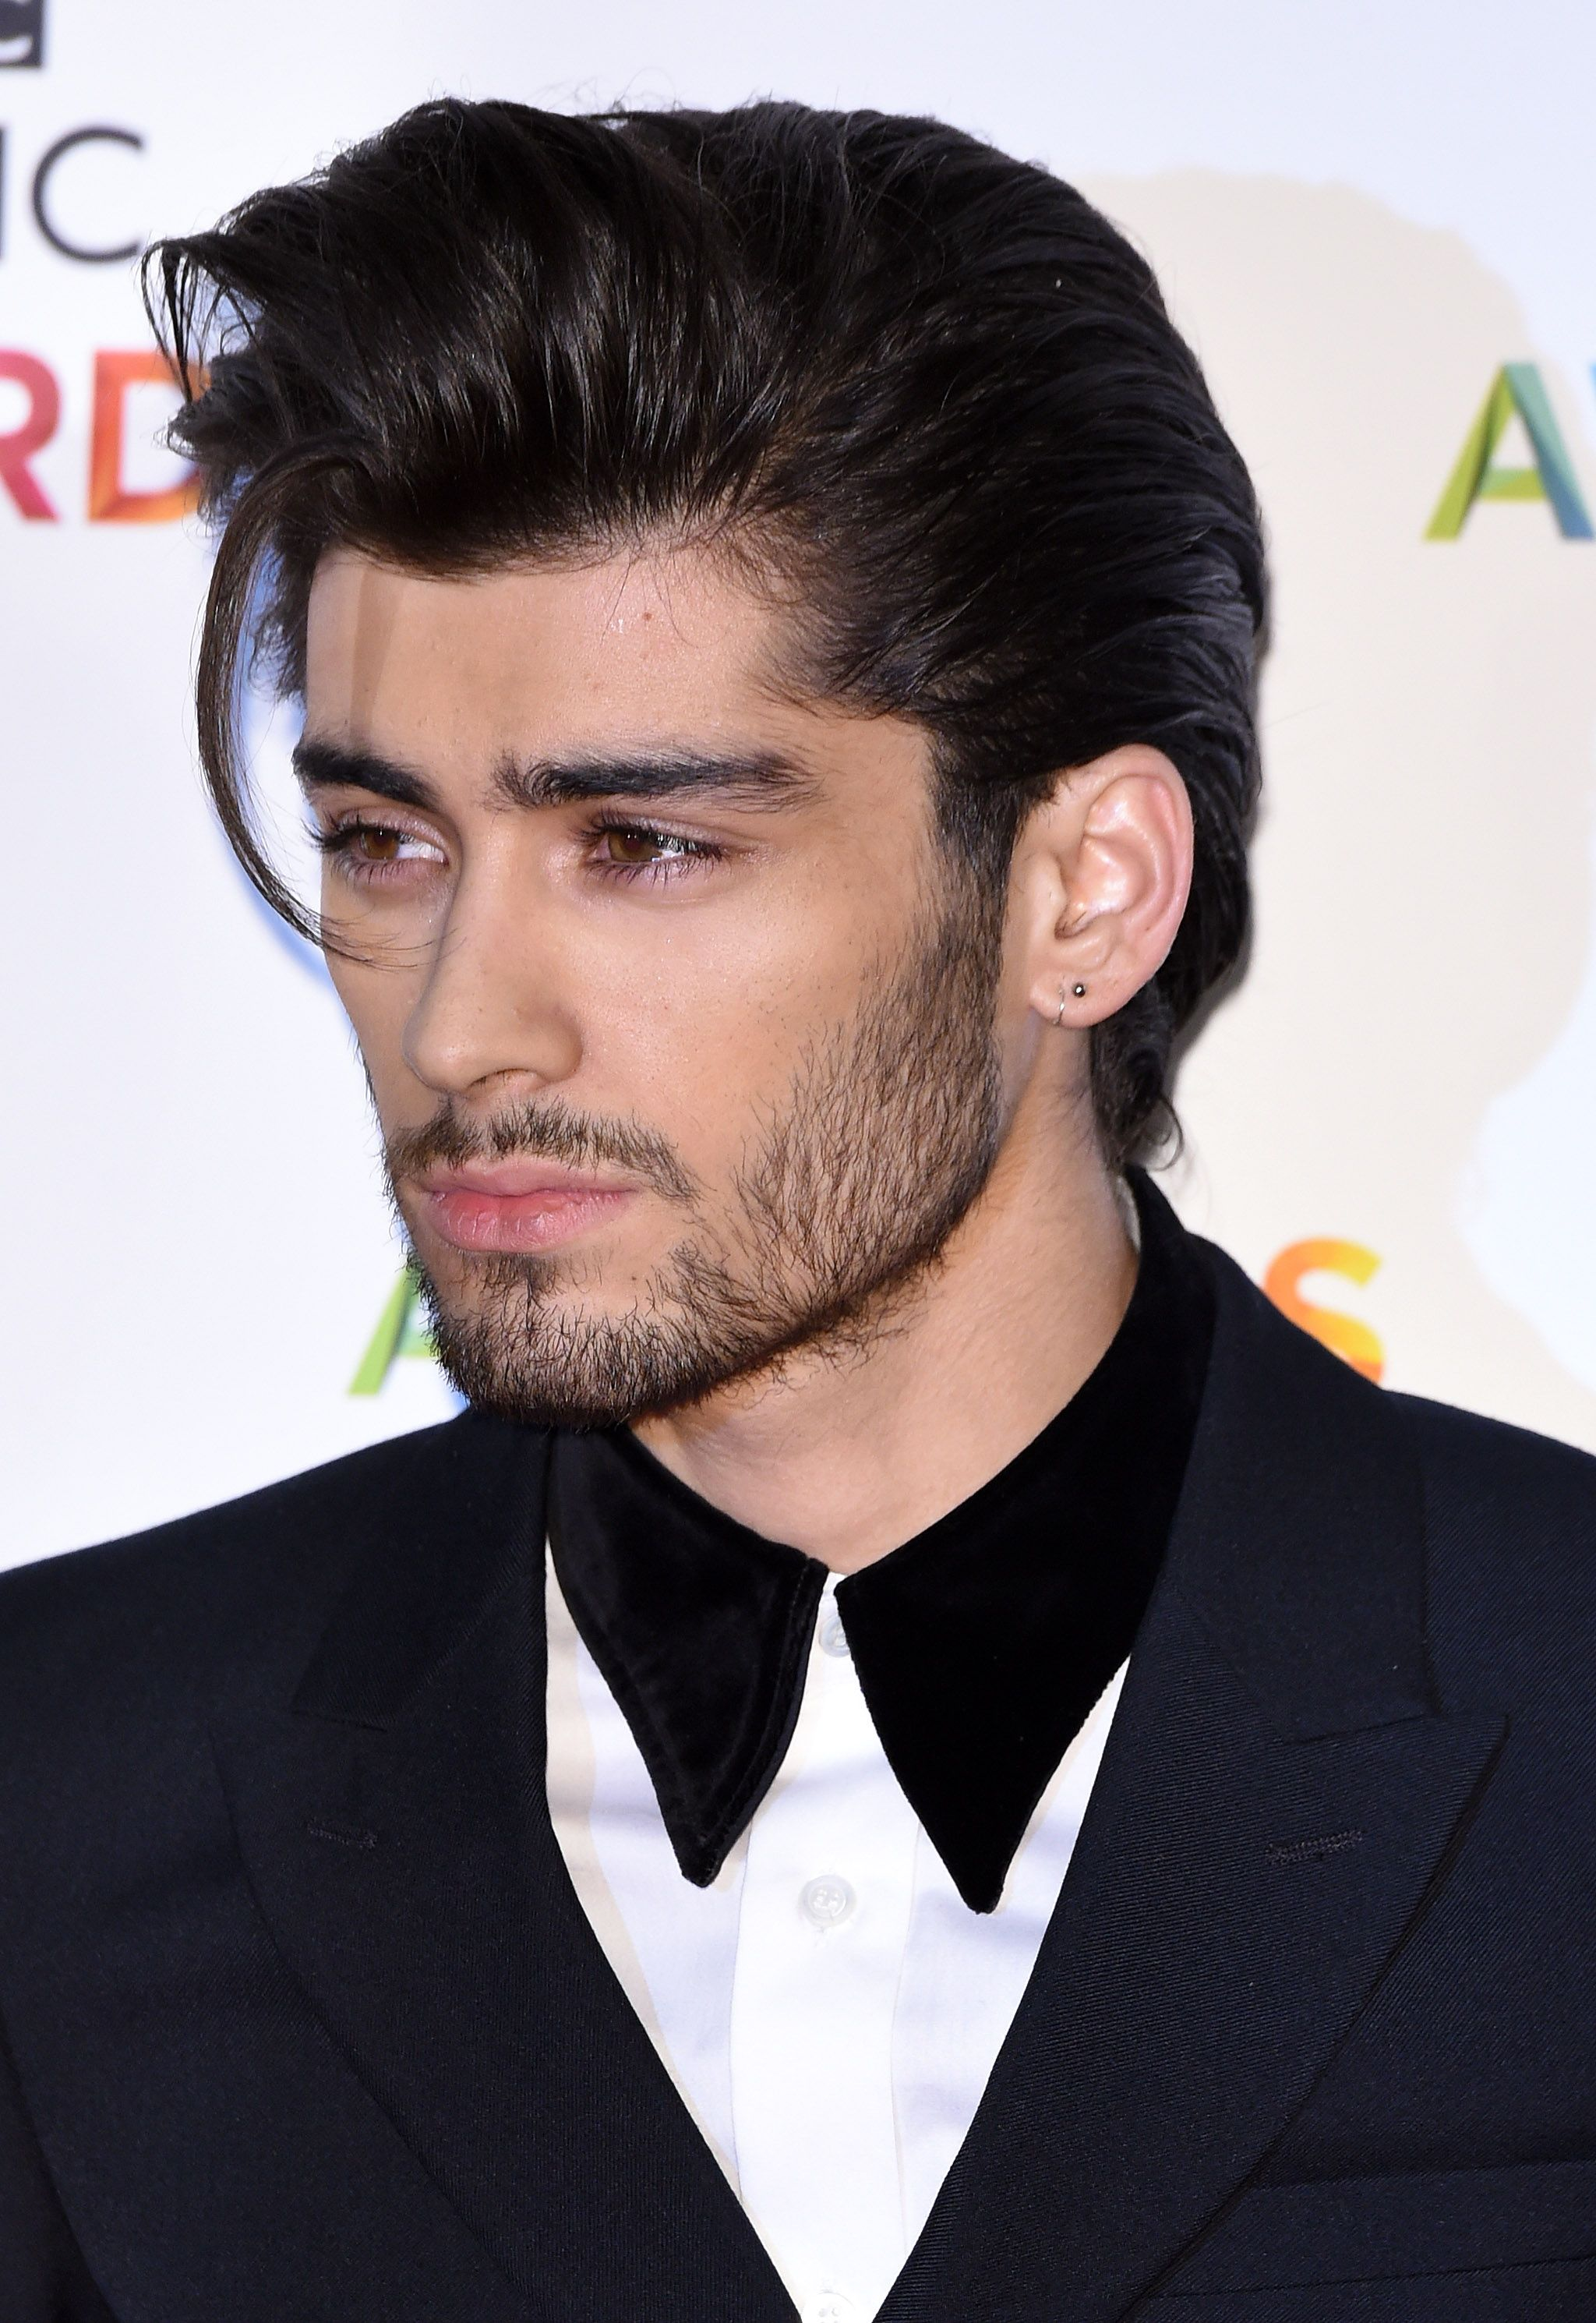 ZAYN MALIK Quit One Direction, And Now His Hair - MTV